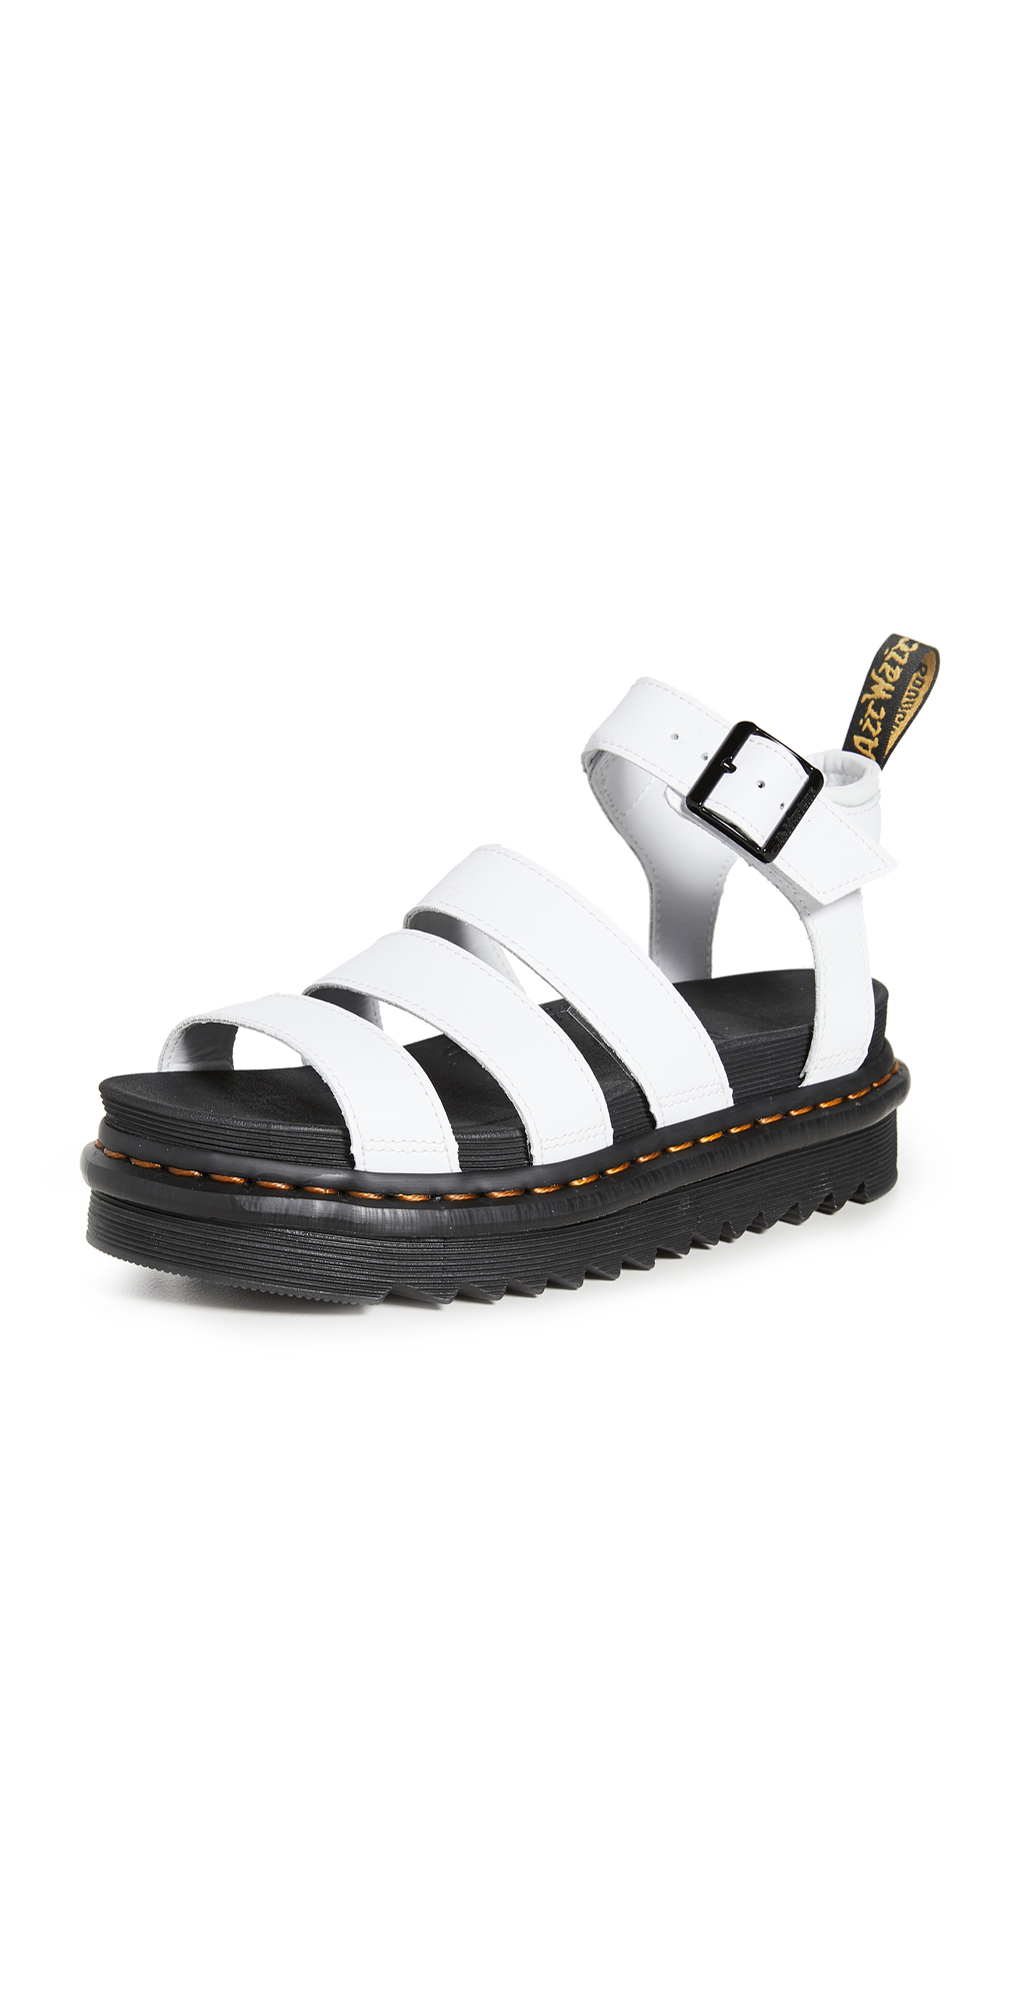 Dr. Martens Blaire Chunky 3 Strap Sandals